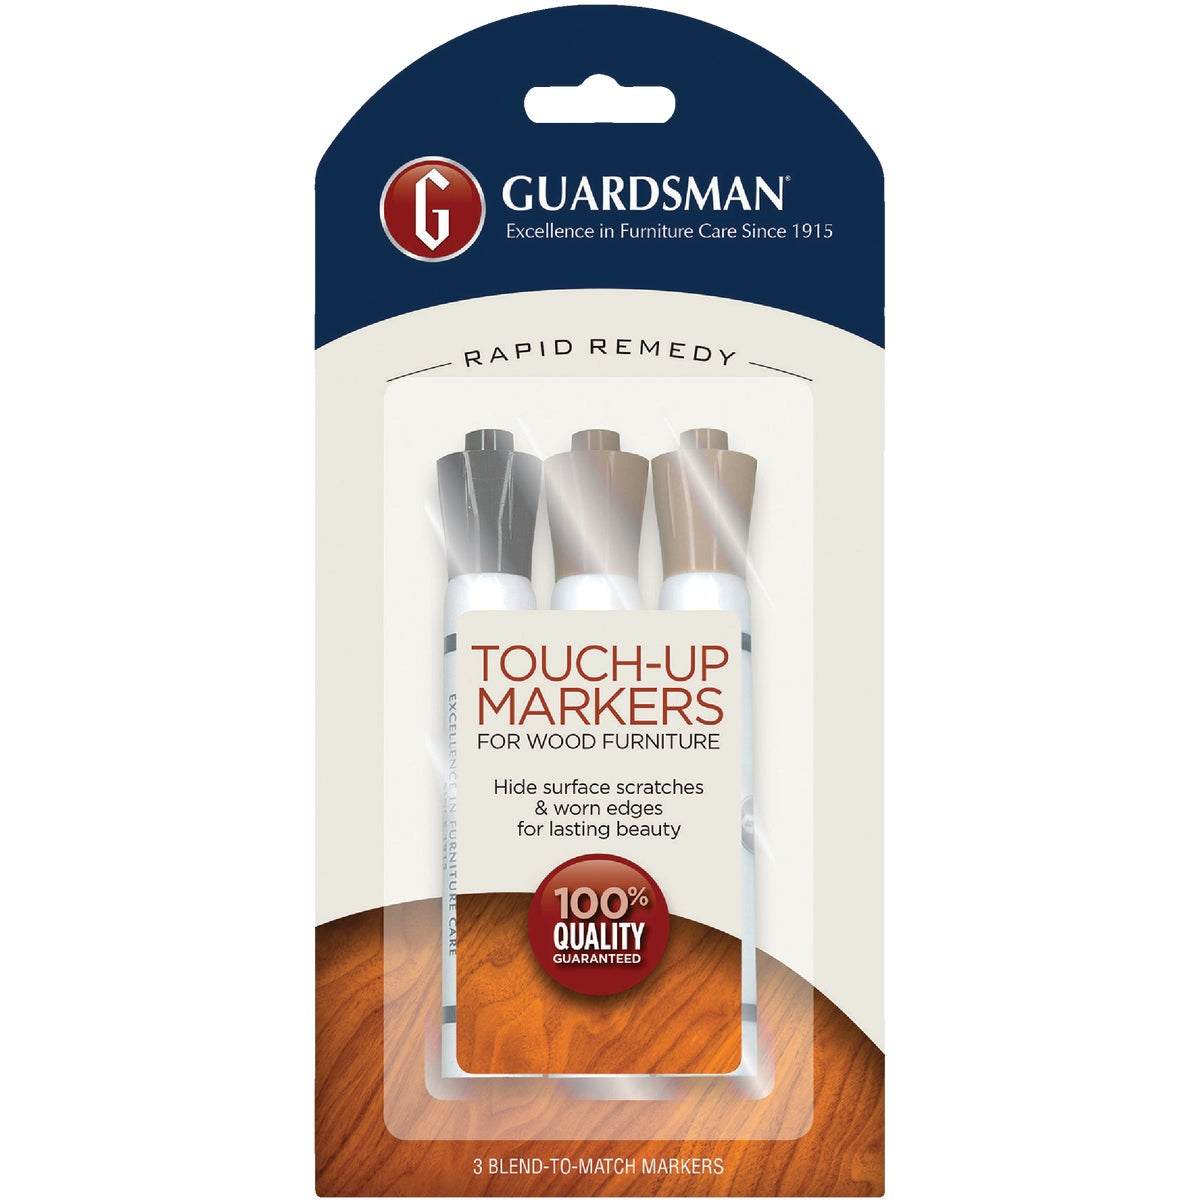 FURN TOUCH-UP MARKERS